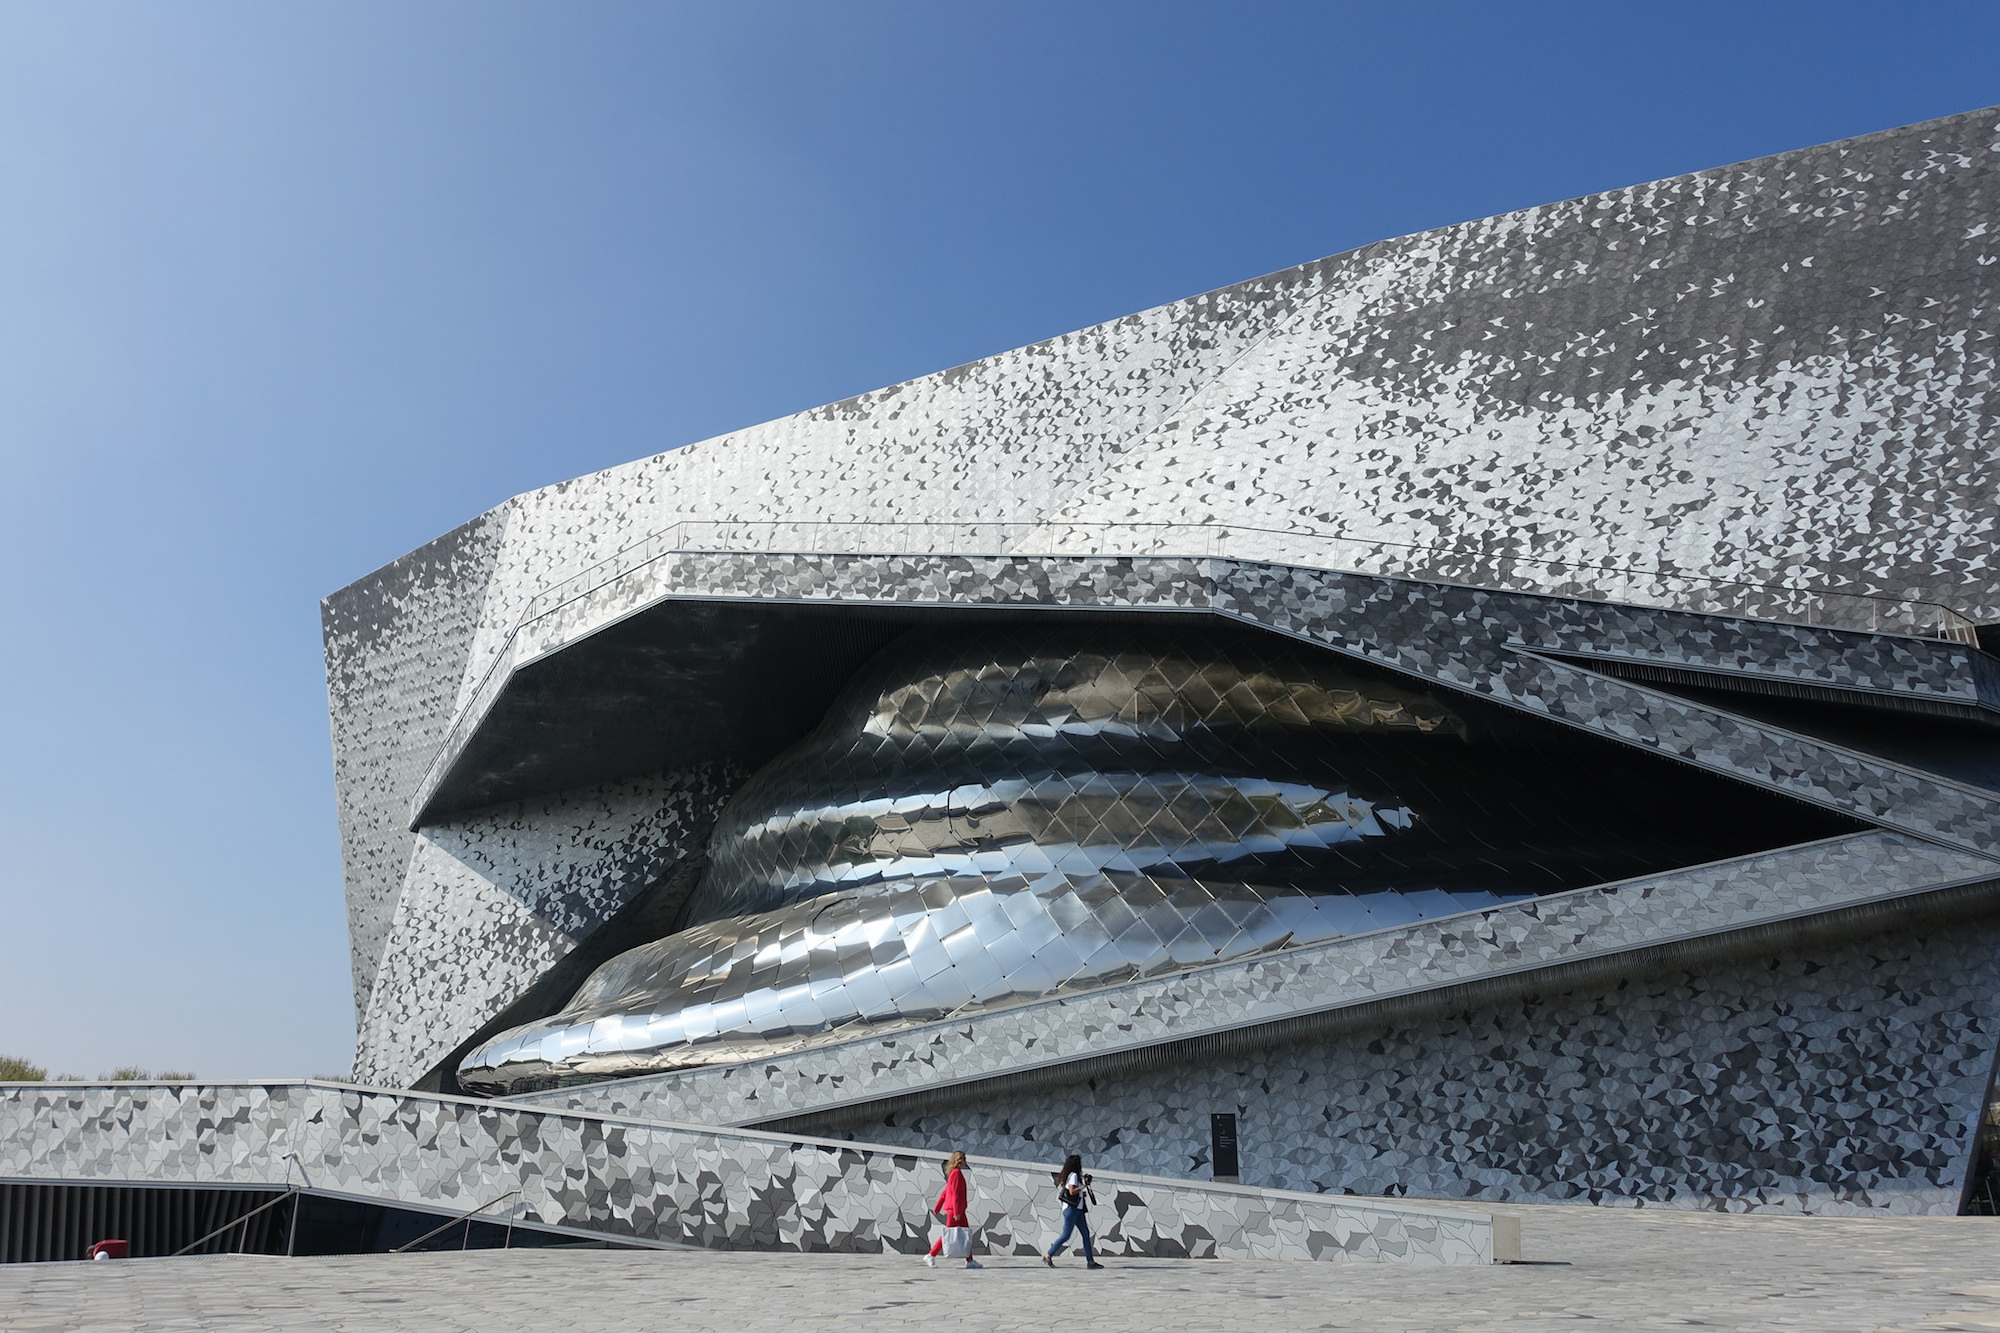 The music events to check out in Paris is April, like at the Philharmonie.